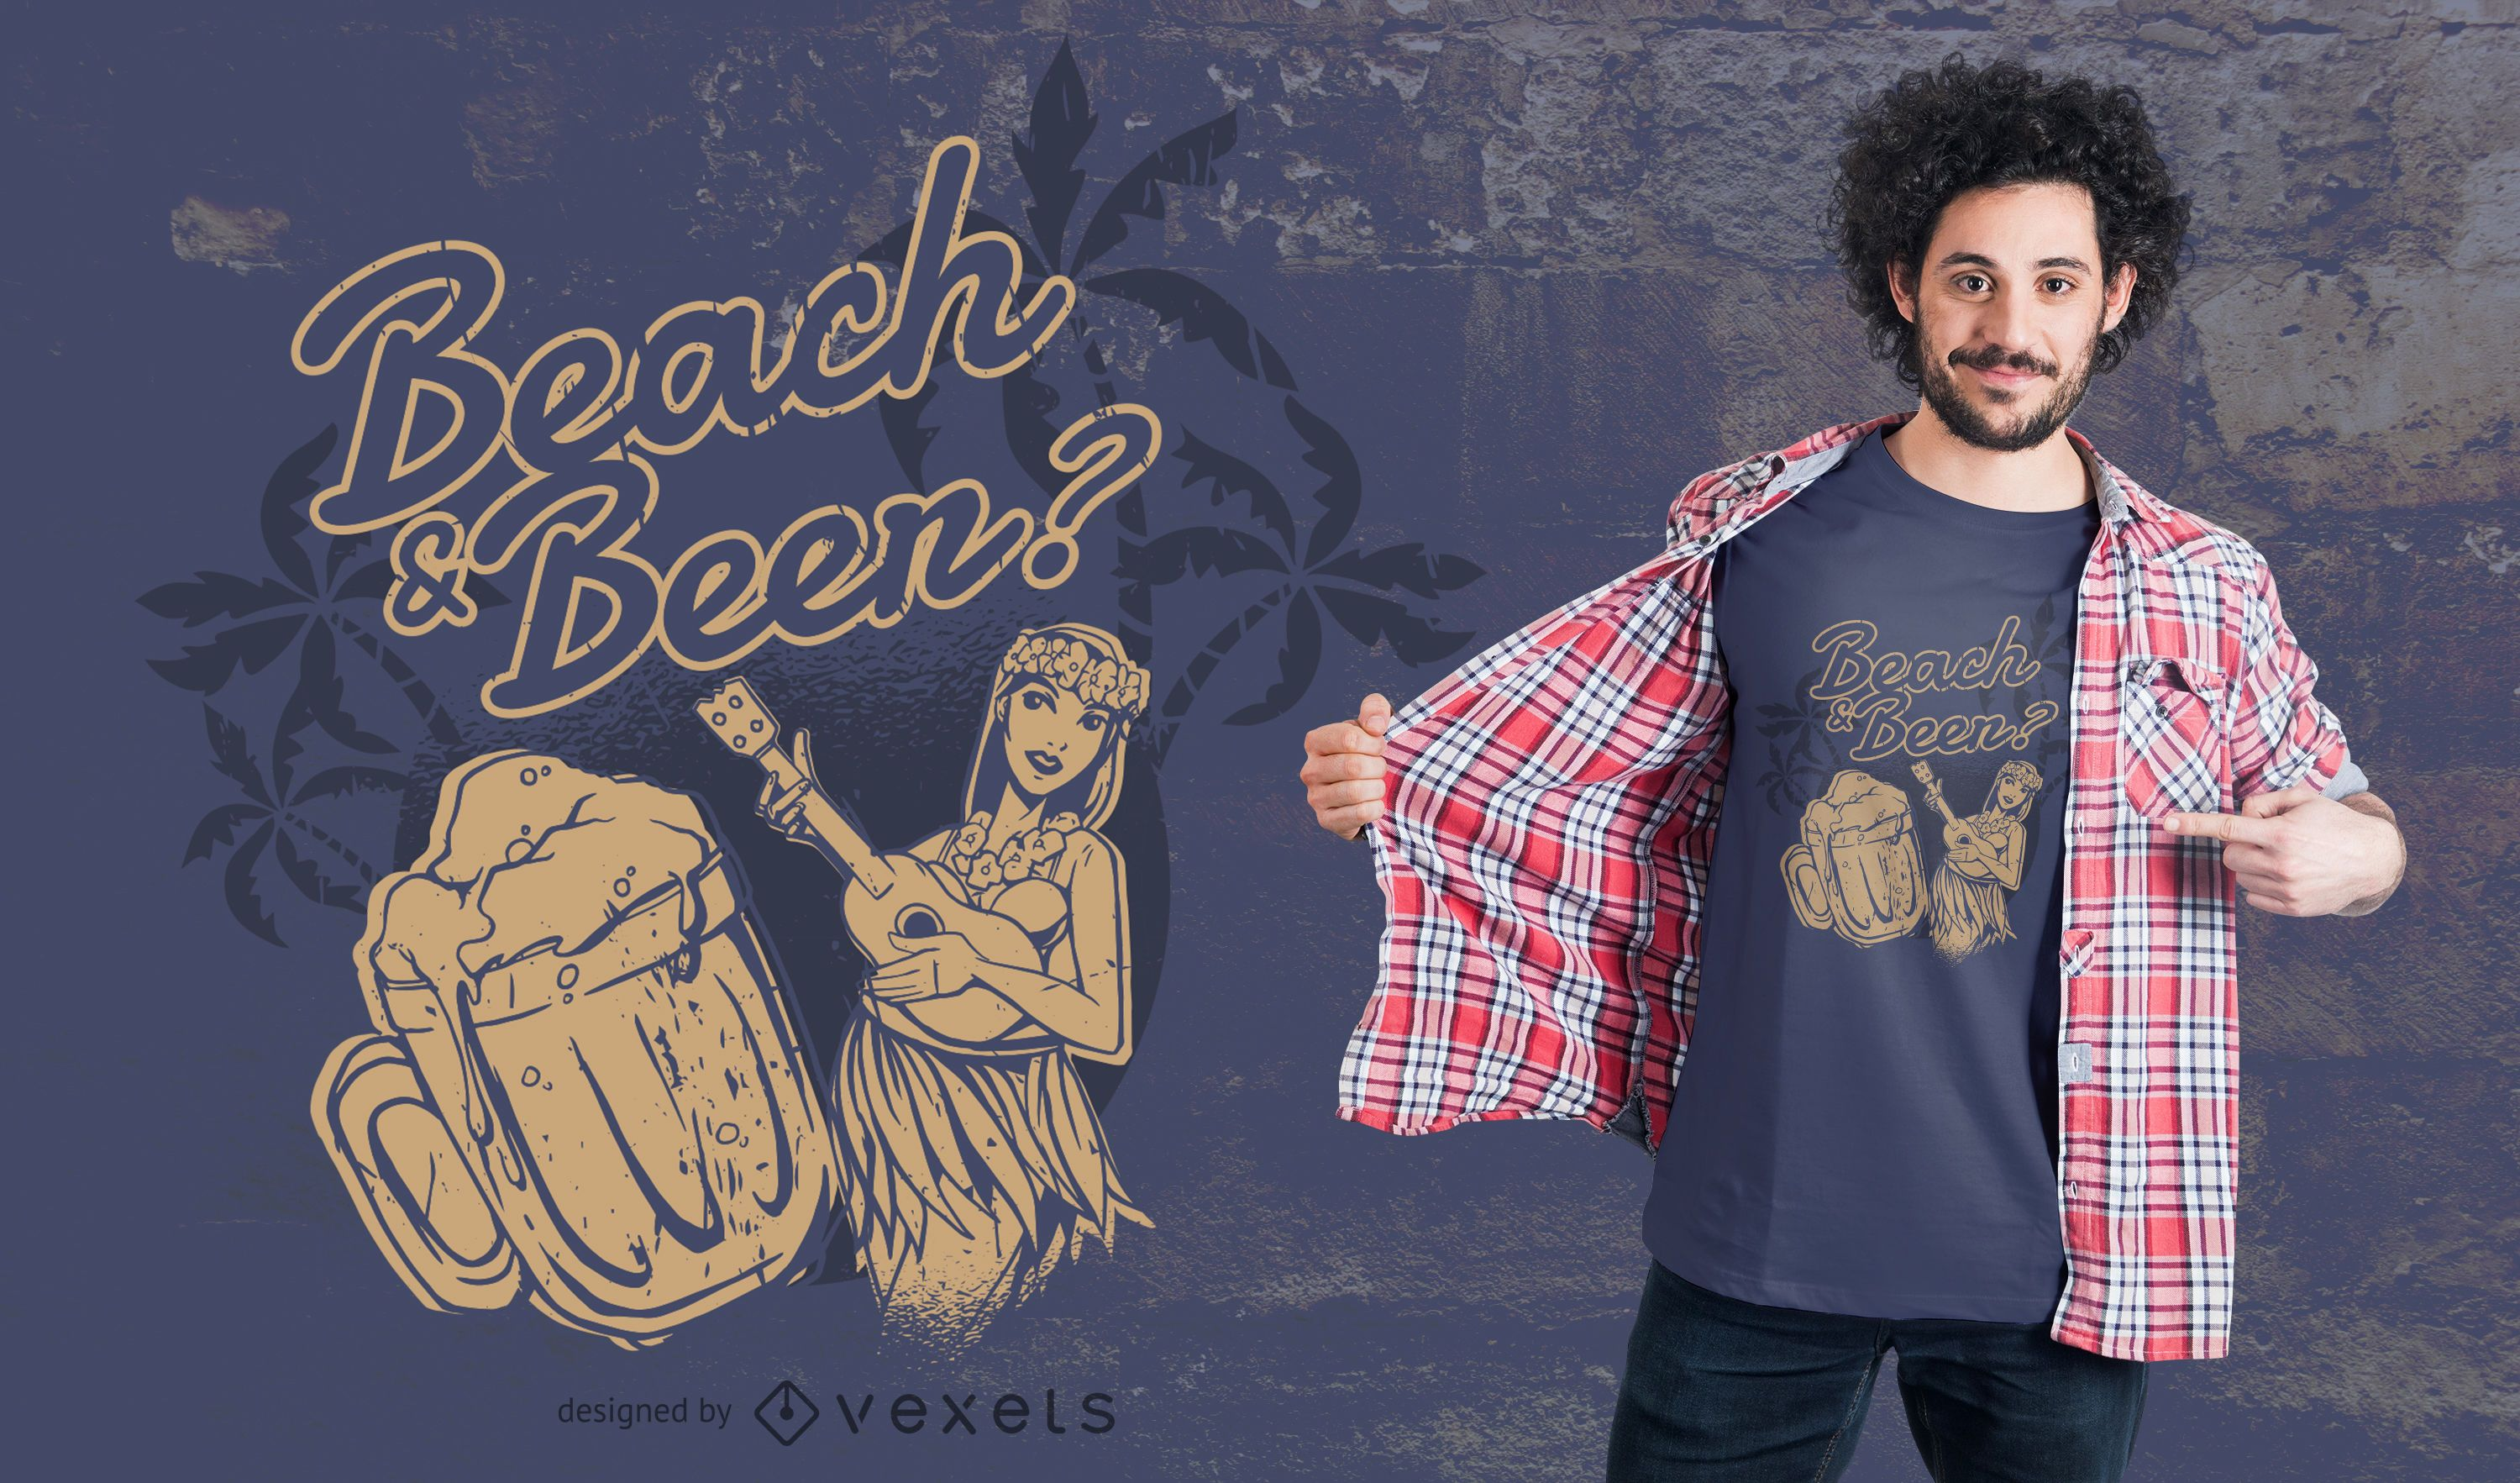 Beach and beer t-shirt design